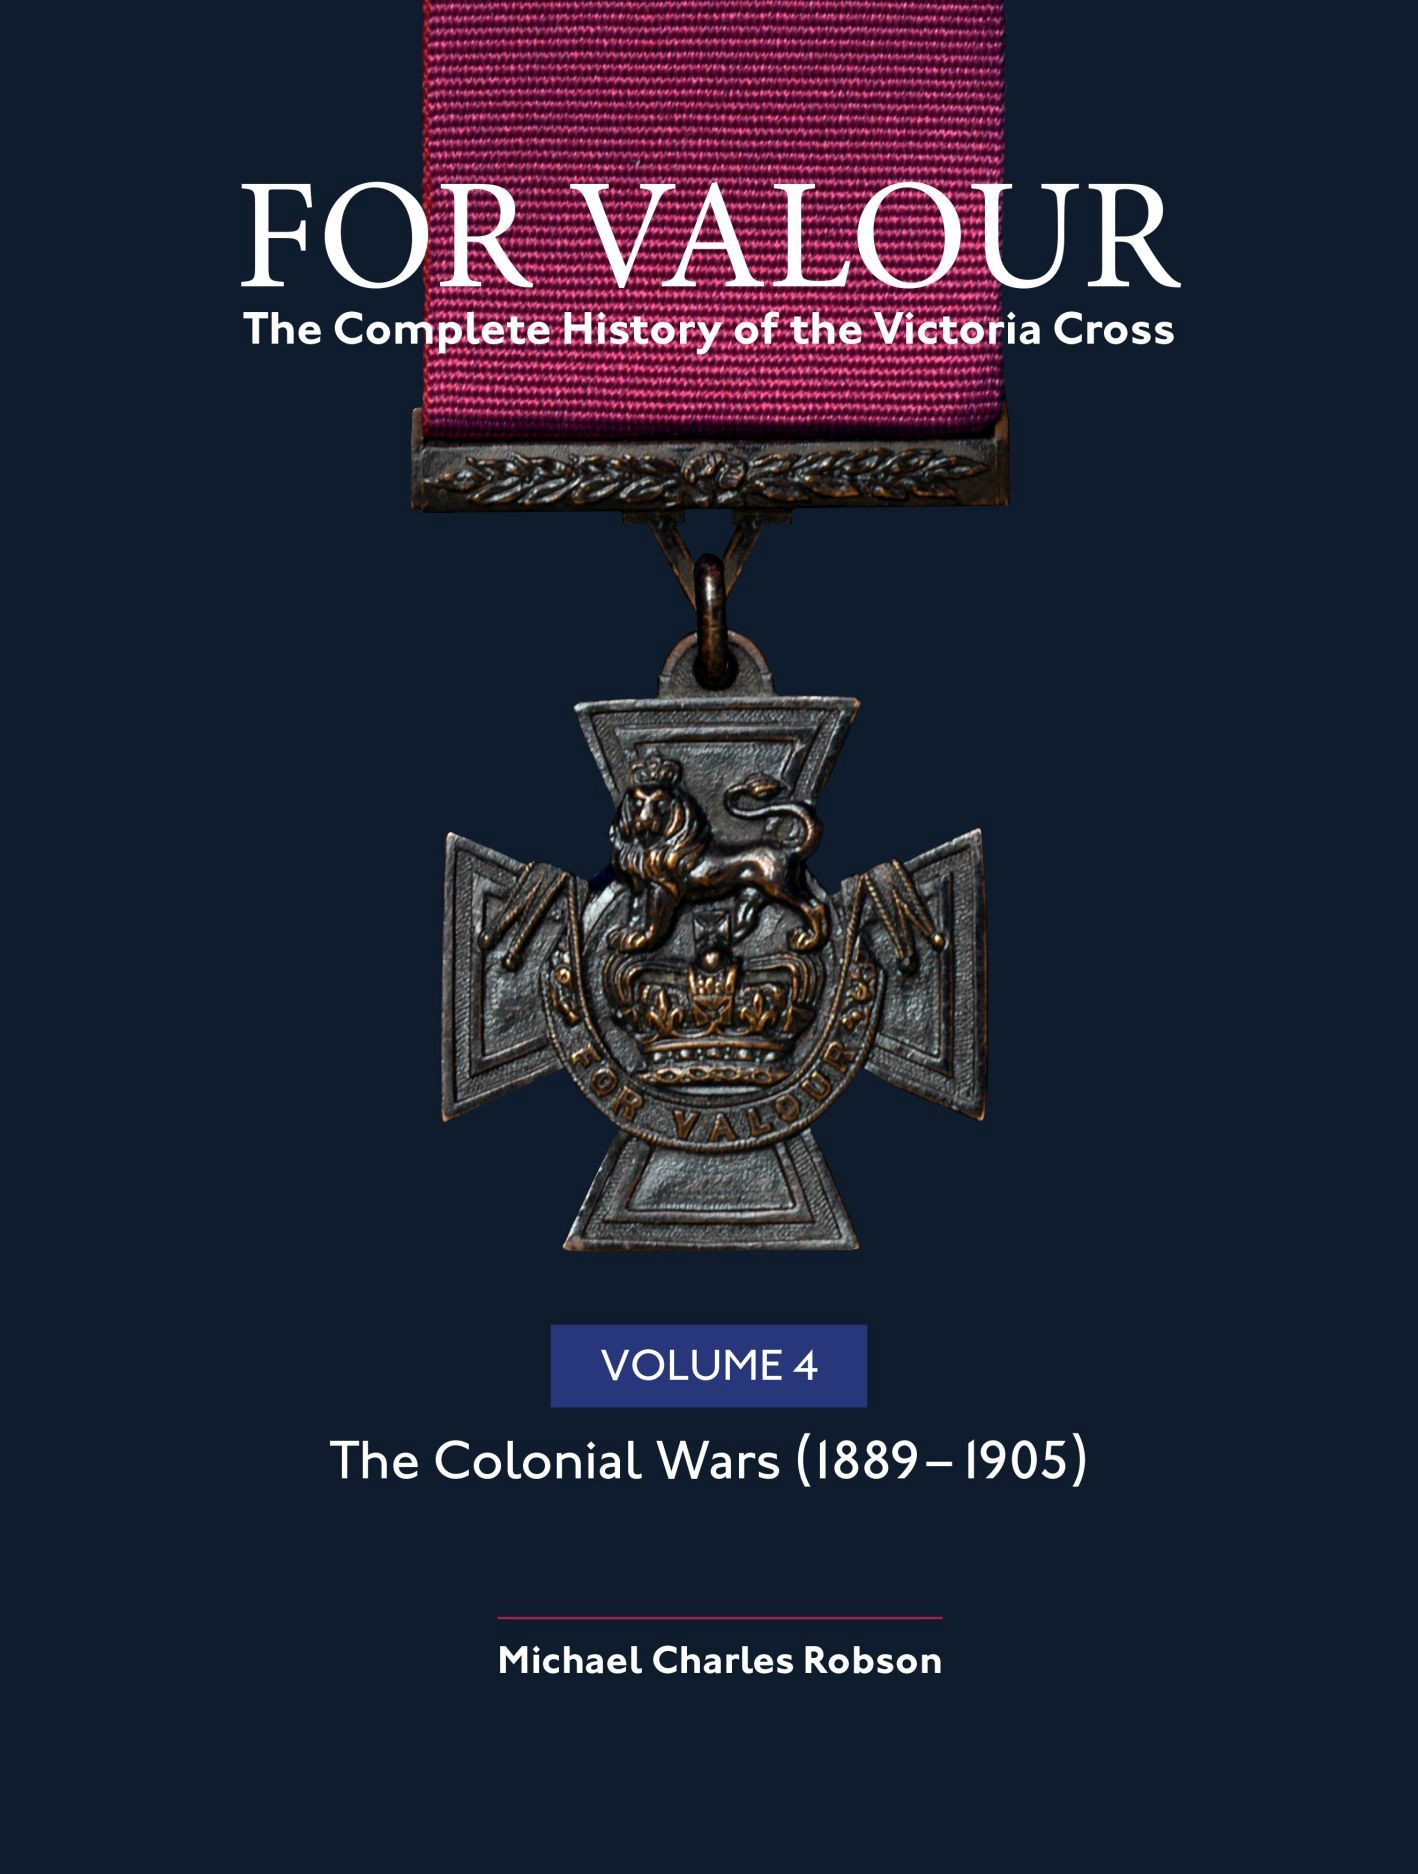 For Valour Volume 4: Volume 4: The Colonial Wars, 1889-1905